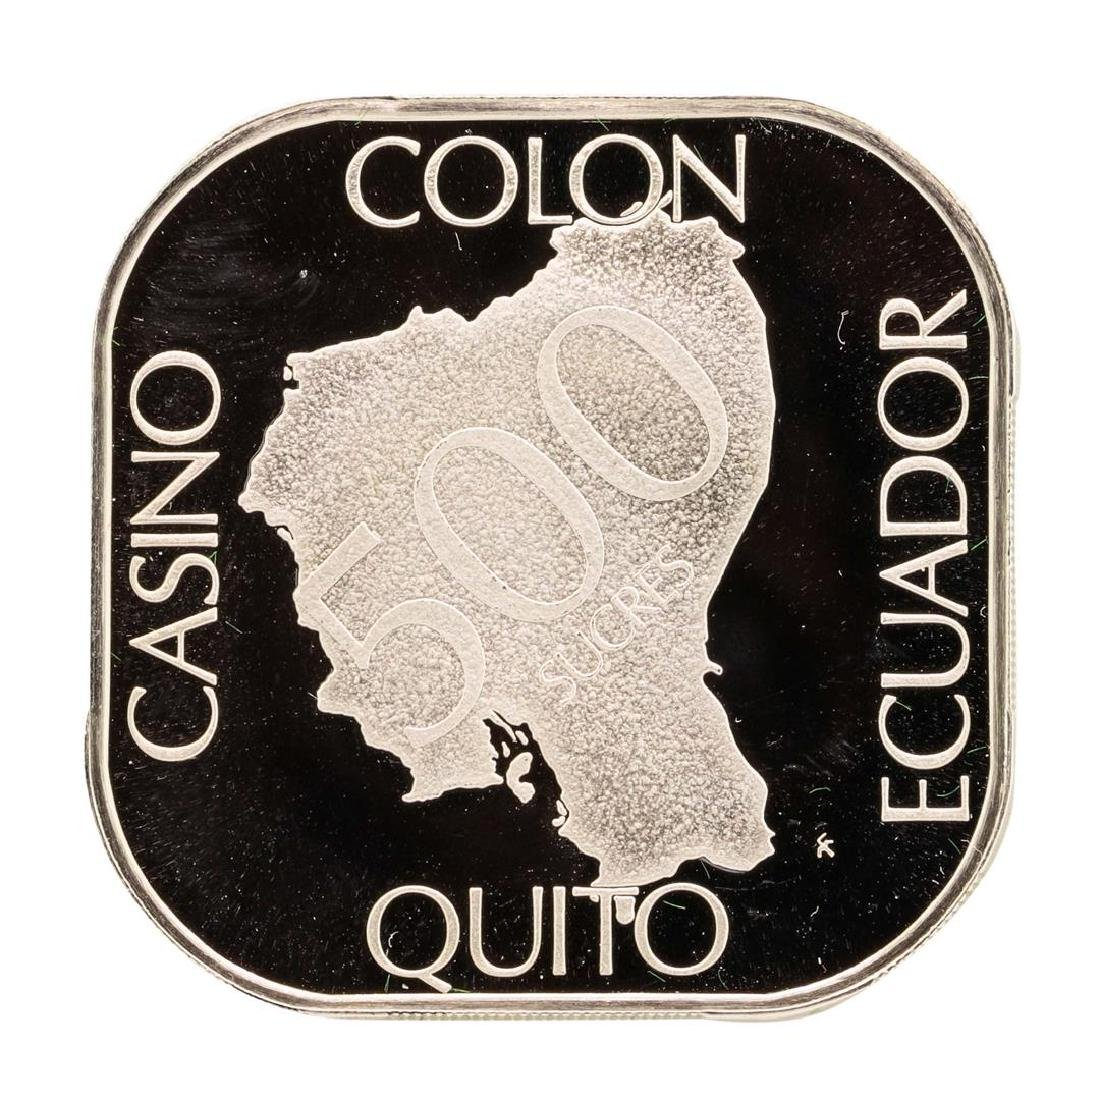 Casino Colon Quito Ecuador 21 gram .925 Sterling Silver